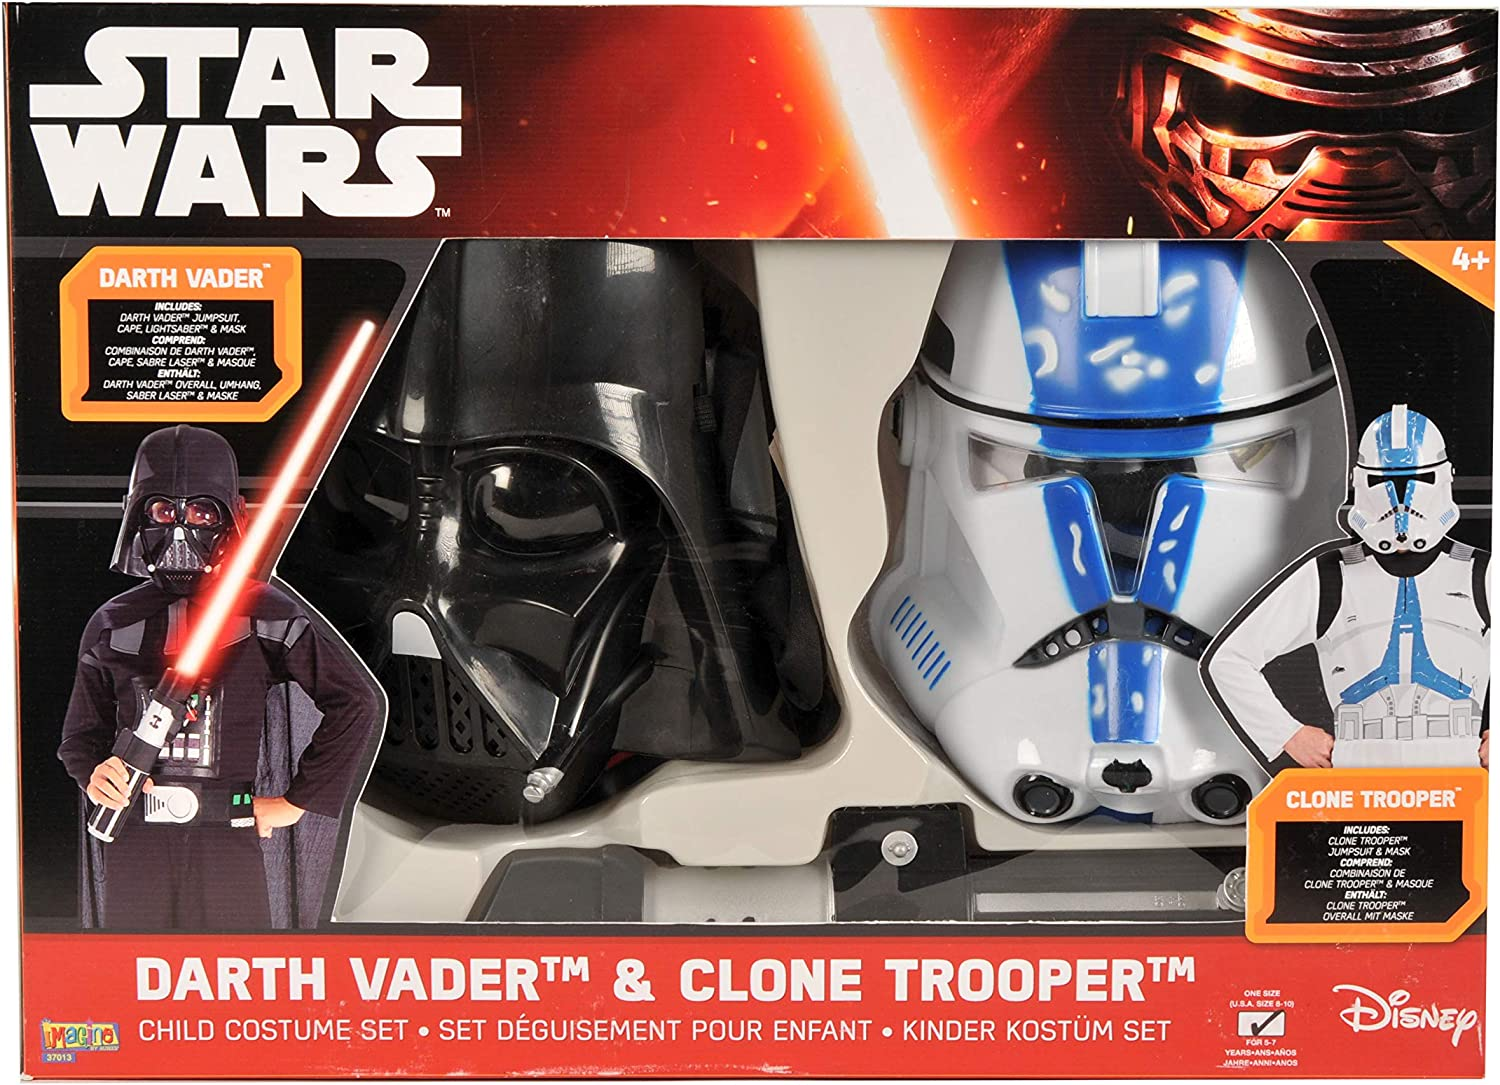 Star Wars - Pack Disfraces Darth Vader y Clone Trooper, 5-7 años ...